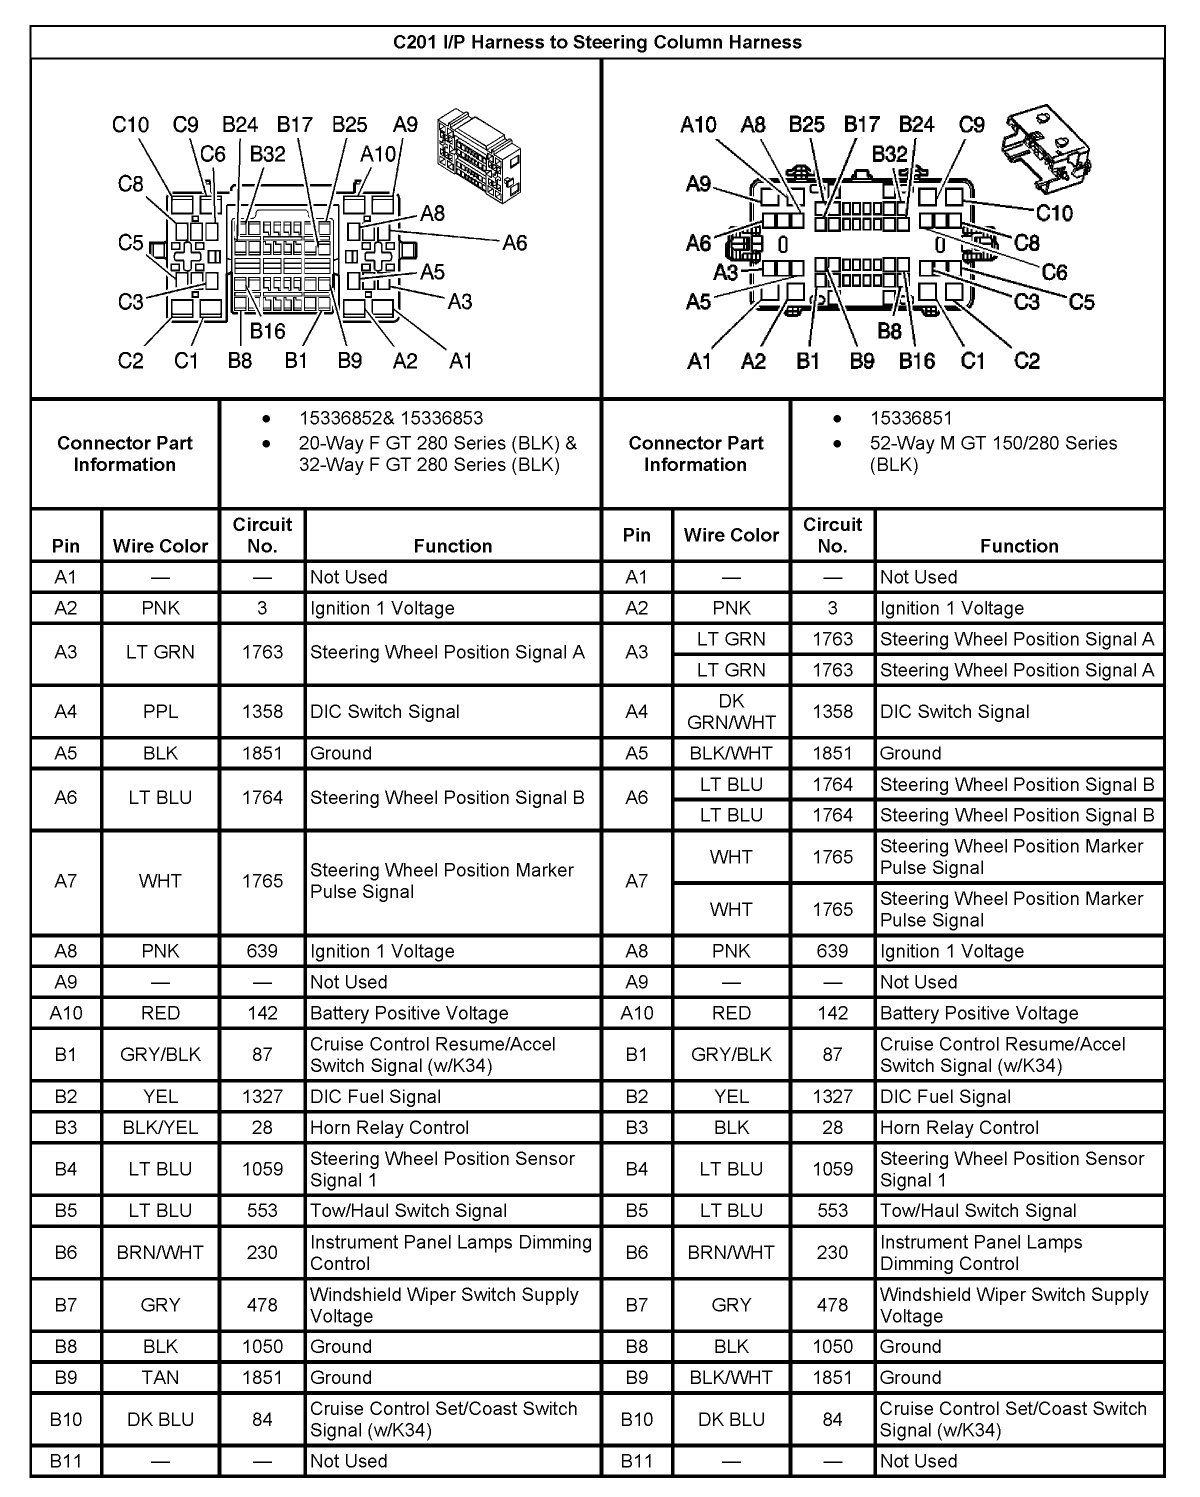 2004 gmc sierra radio wiring diagram | free wiring diagram aftermarket radio wiring diagram 2004 chevy silverado headlights 96 chevy tahoe aftermarket radio wiring diagram #10